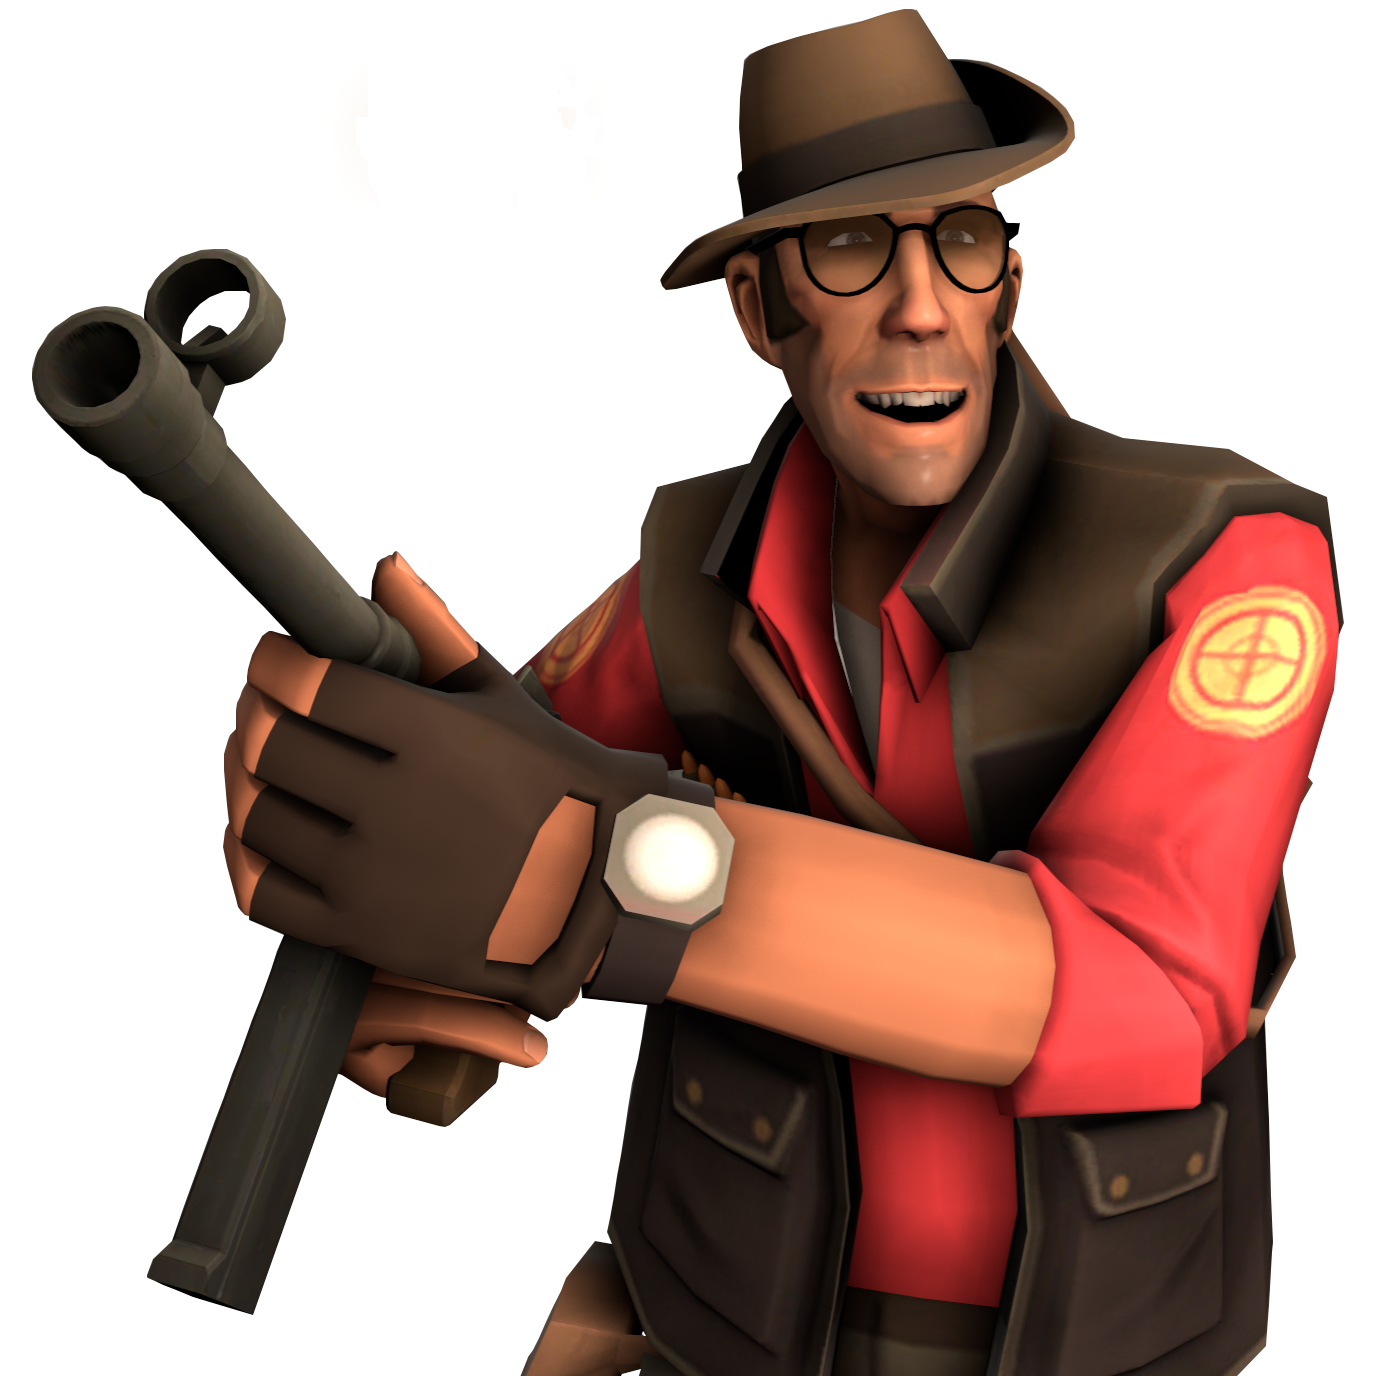 Petition Team Fortress 2 On Current-Generation Consoles